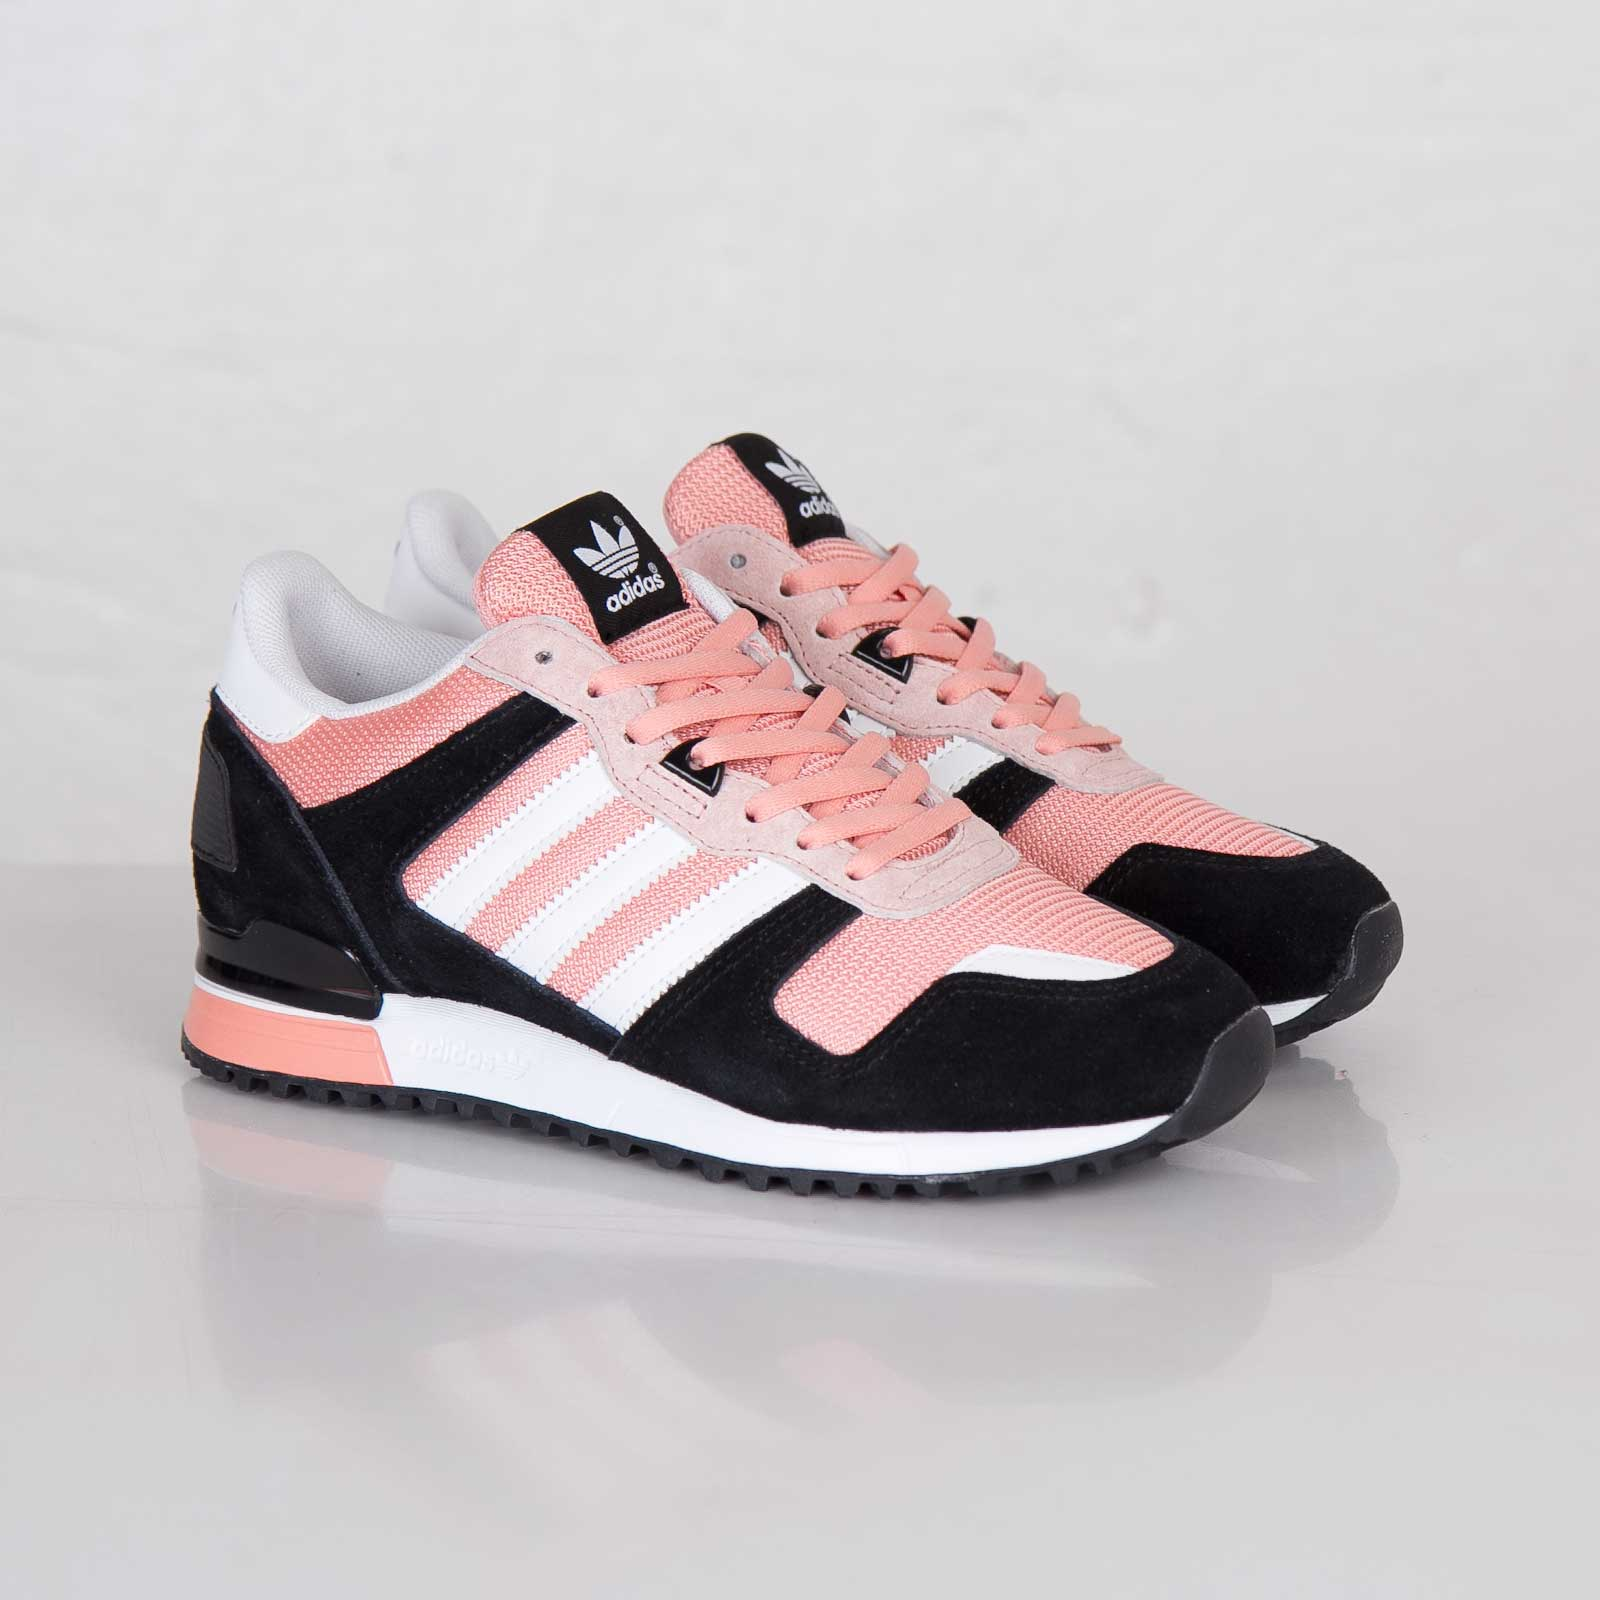 adidas originals zx 700 w dames